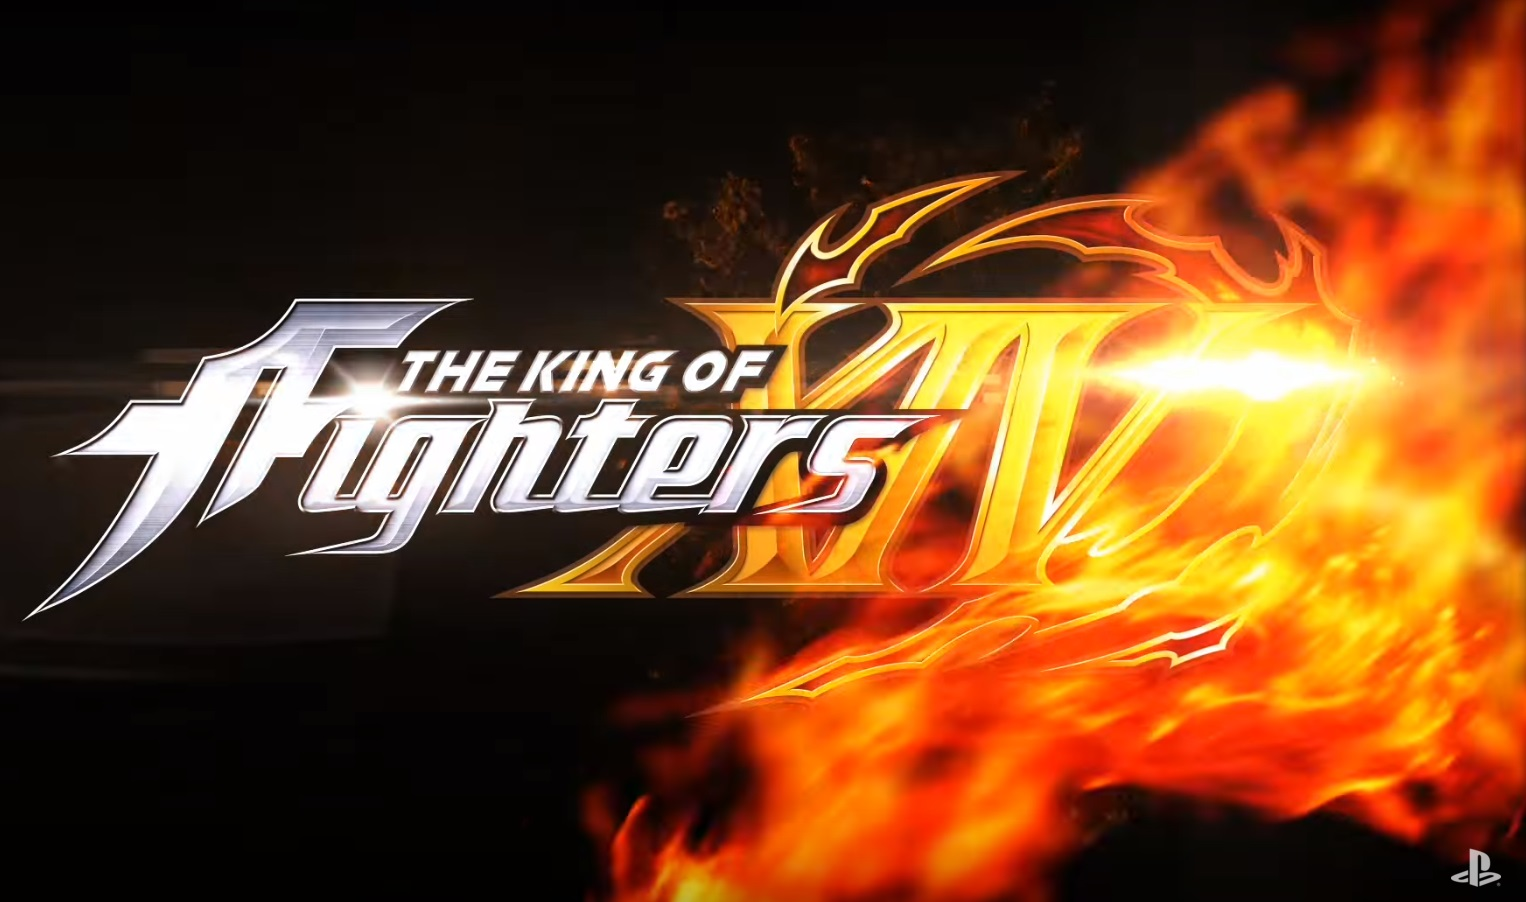 The King Of Fighters Xiv Team Gameplay Trailer Art Of Fighting Video Games Blogger